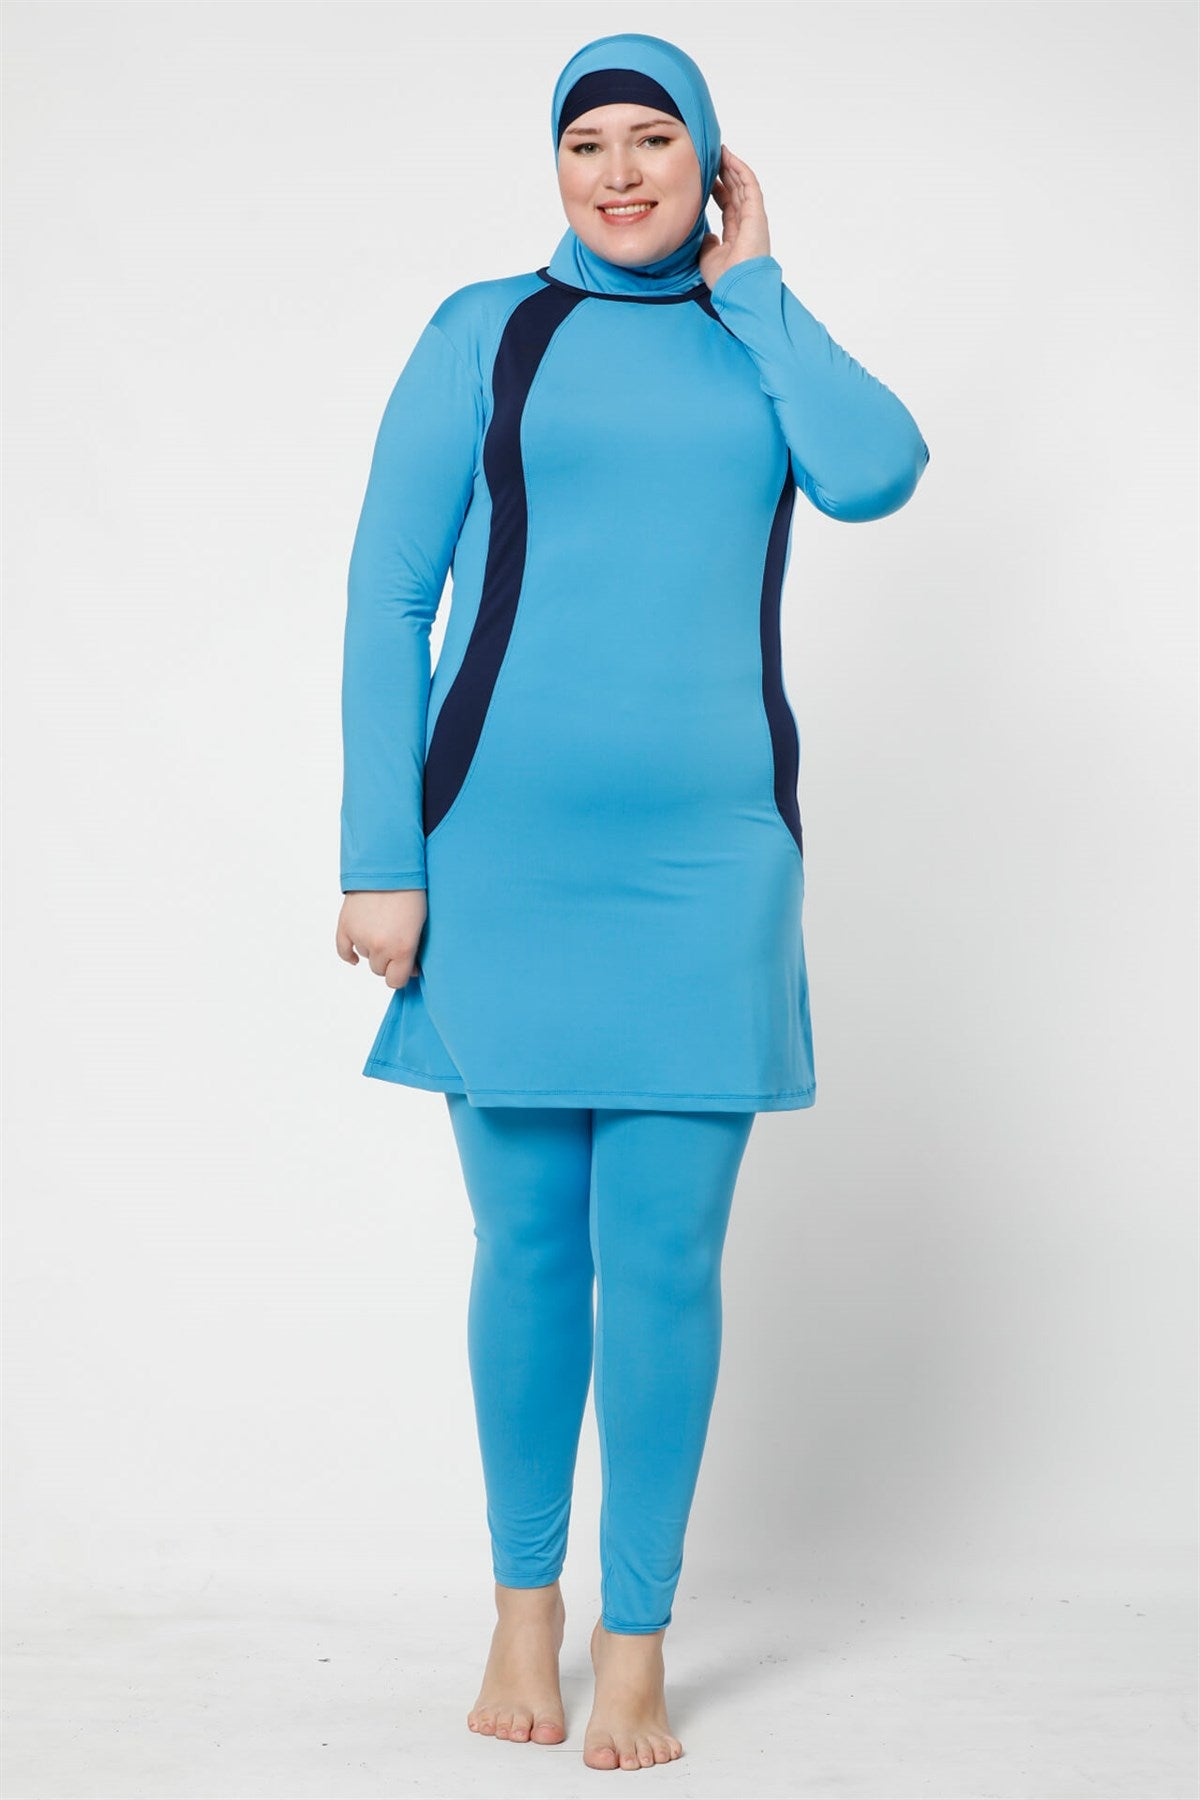 Women's Oversize Long Sleeve Blue Lycra Modest Swimwear